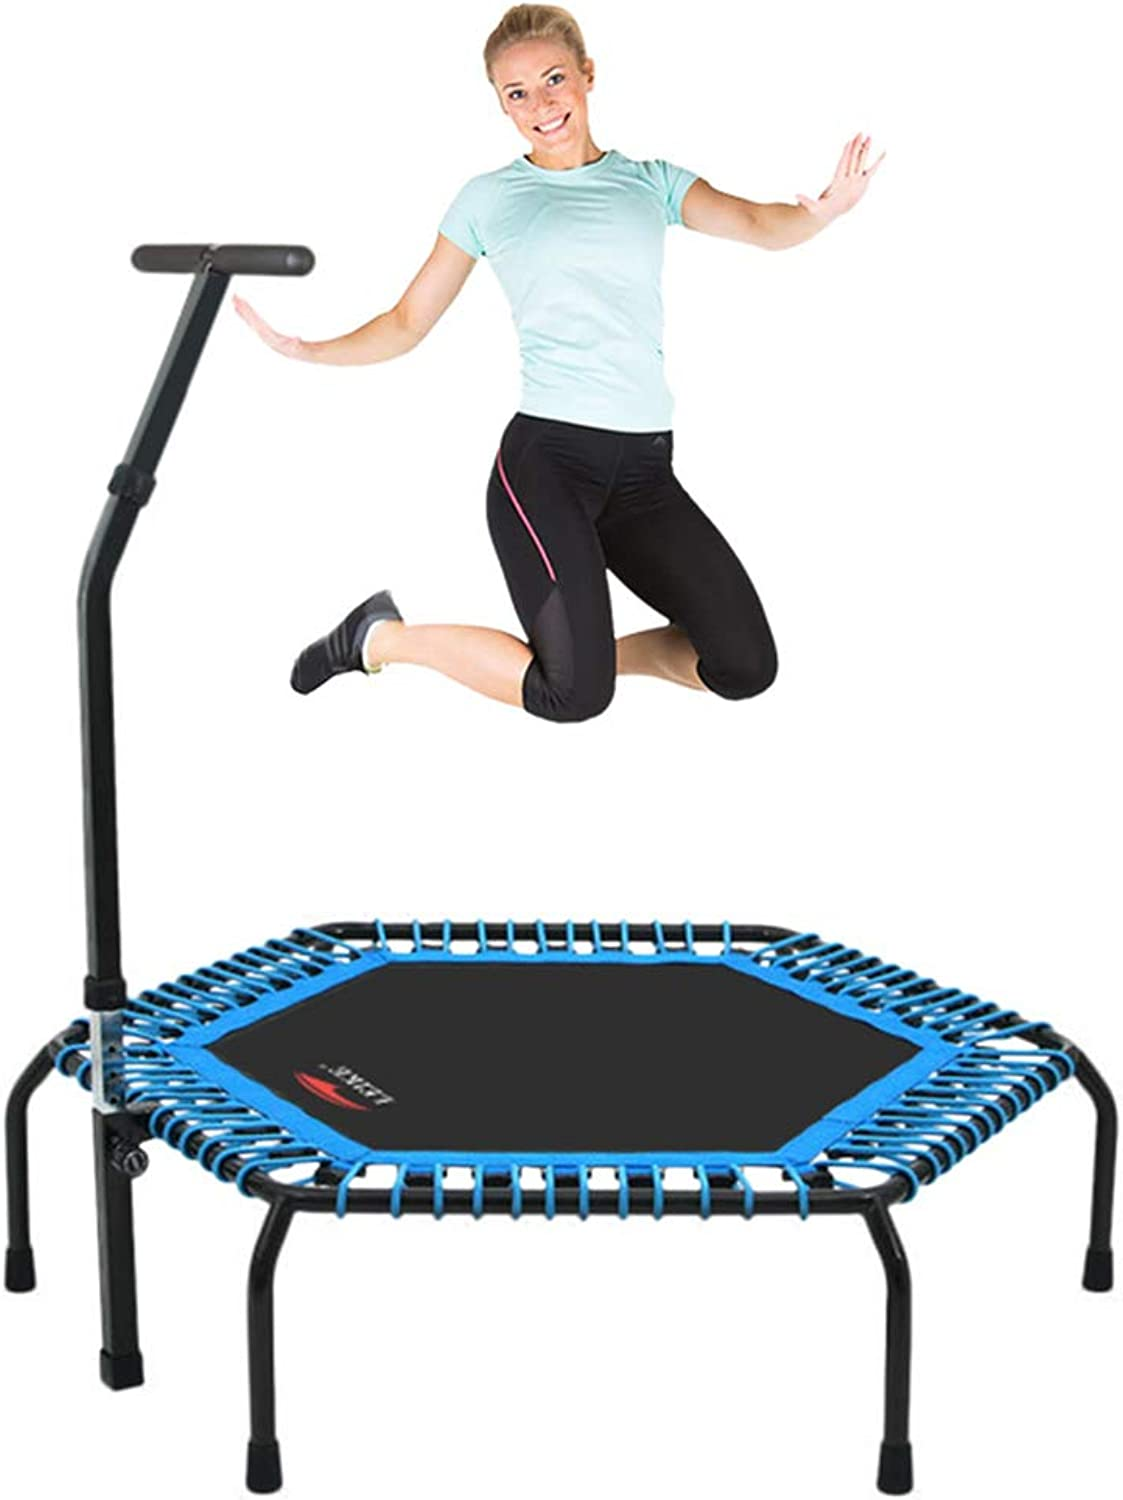 Fitness Trampolines Trampoline Bouncers Jump Trampoline Indoor and Outdoor Fitness Equipment with Armrests Gift for Family Kids ToysBearing Weight 150kg (color   Black, Size   140cm)